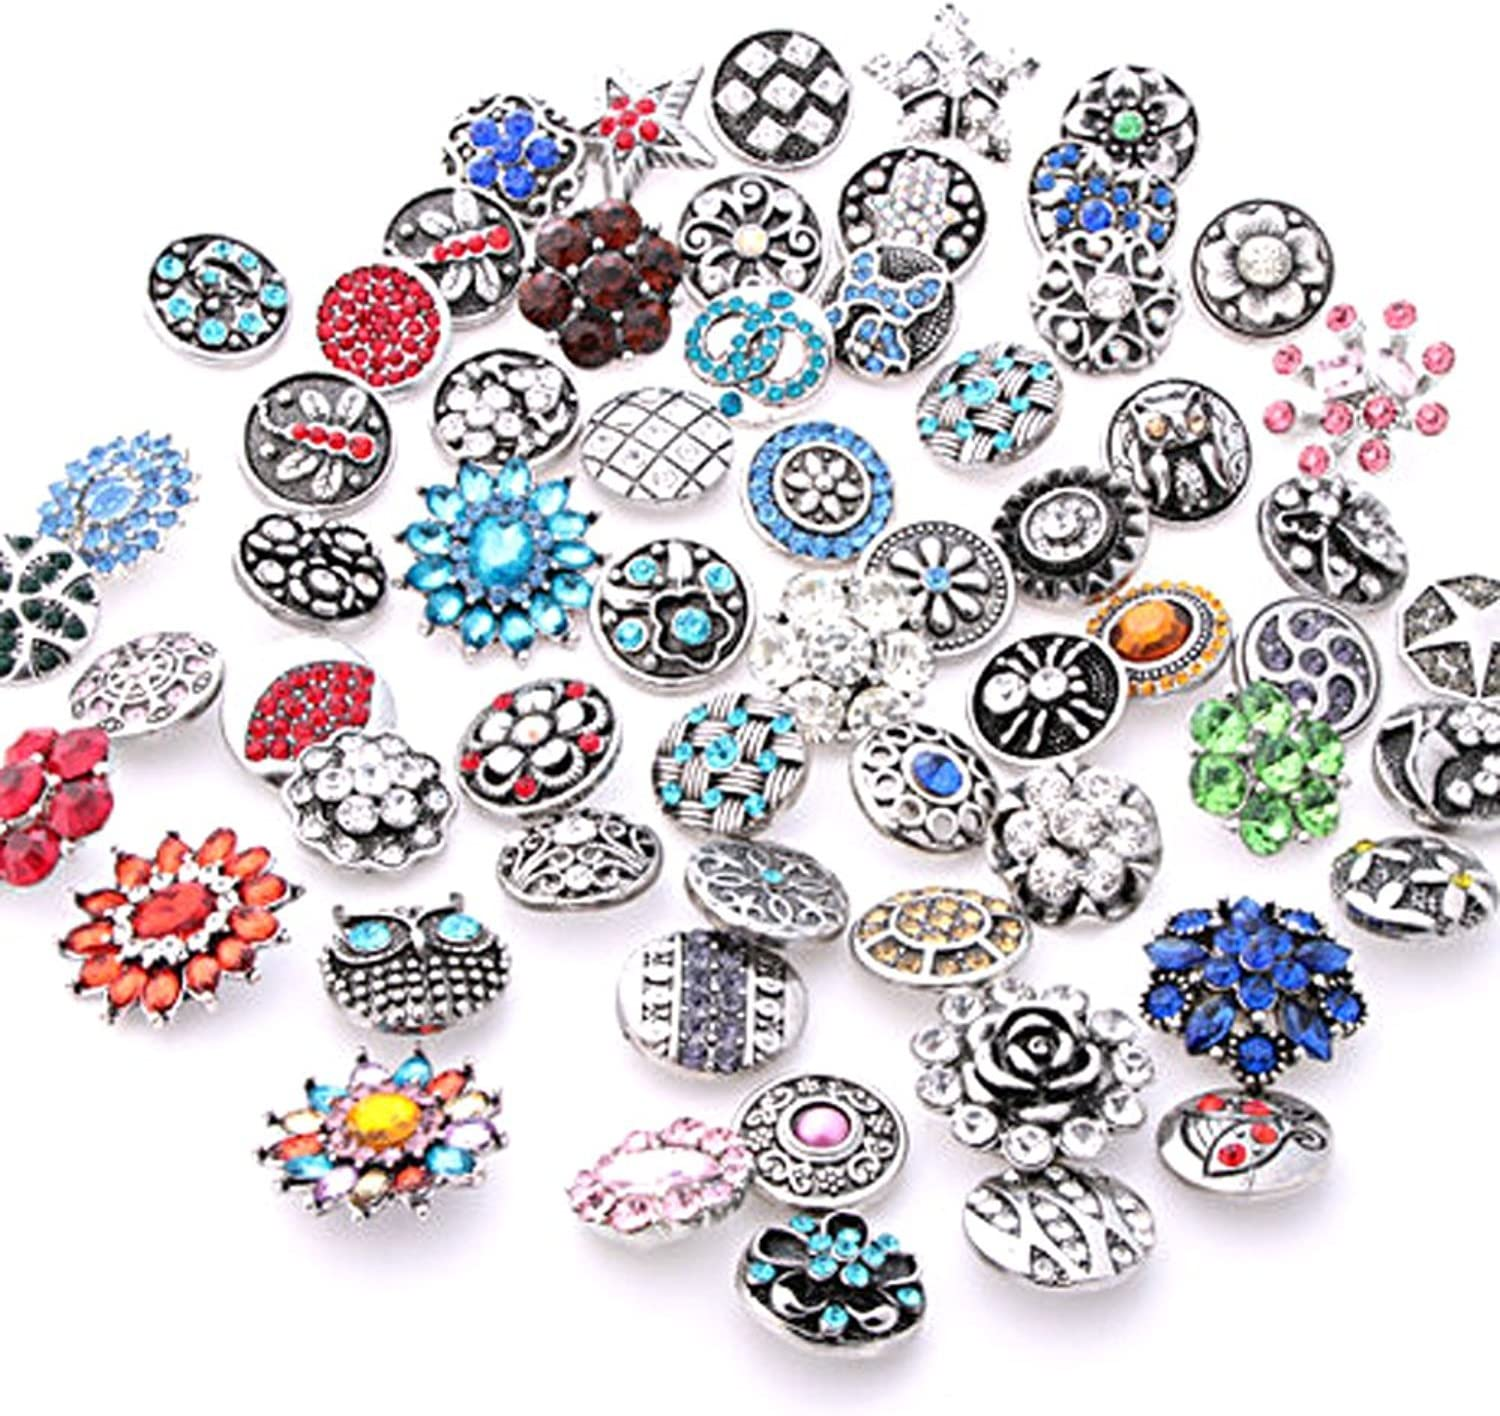 Ginooars Pack of Regular discount Dedication 50 Rhinestone Snap S for Buttons 18-20mm Charms